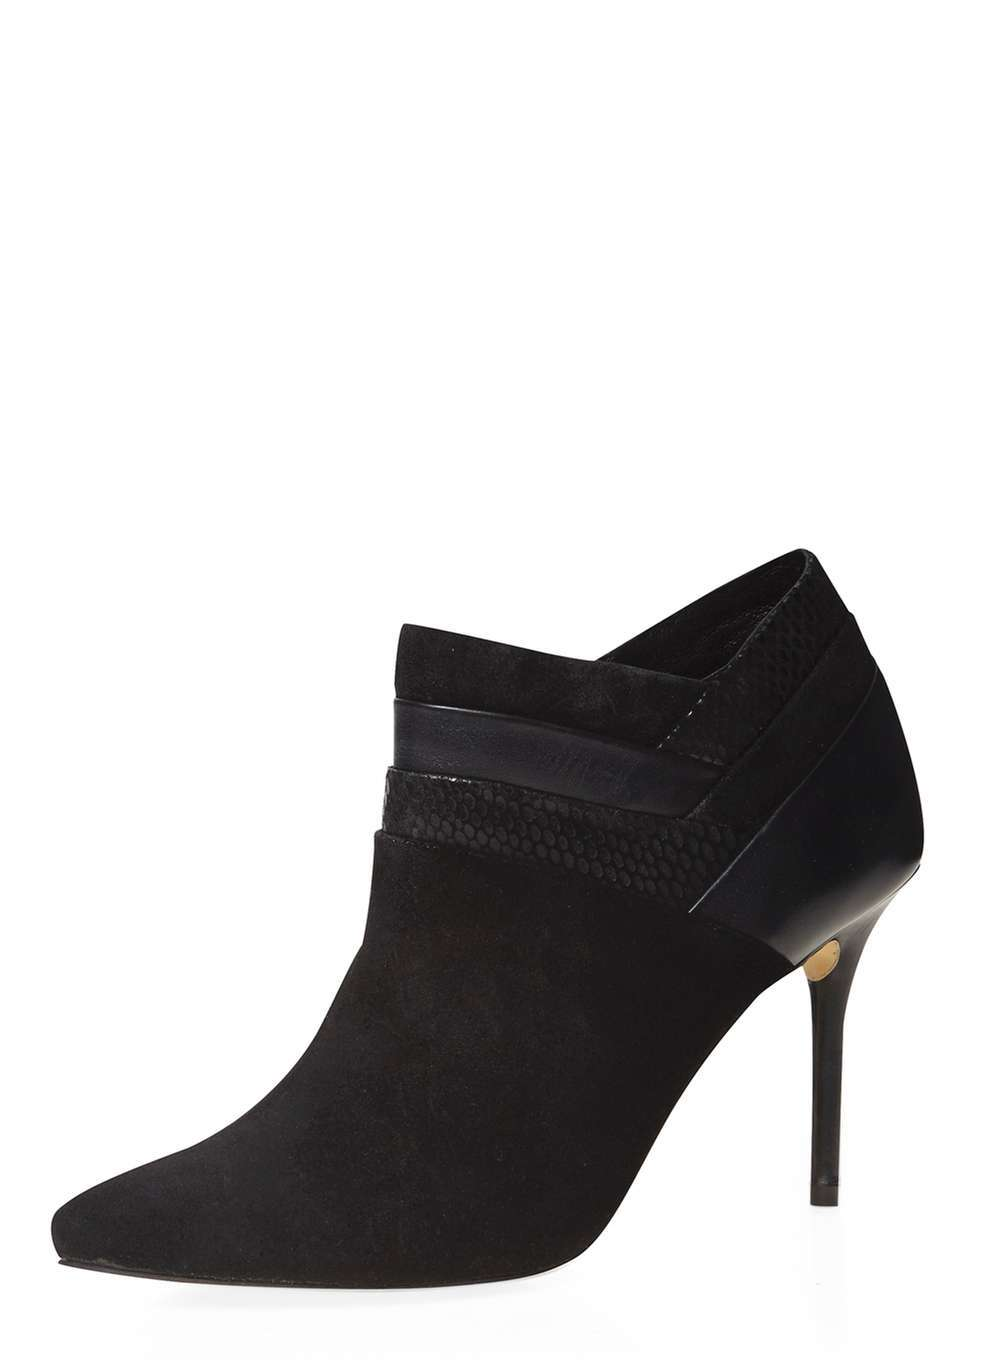 Womens **Ravel Black Ankle Boots Black - predominant colour: black; secondary colour: black; occasions: evening; material: suede; heel height: high; heel: stiletto; toe: pointed toe; boot length: ankle boot; style: standard; finish: plain; pattern: plain; season: a/w 2016; wardrobe: event